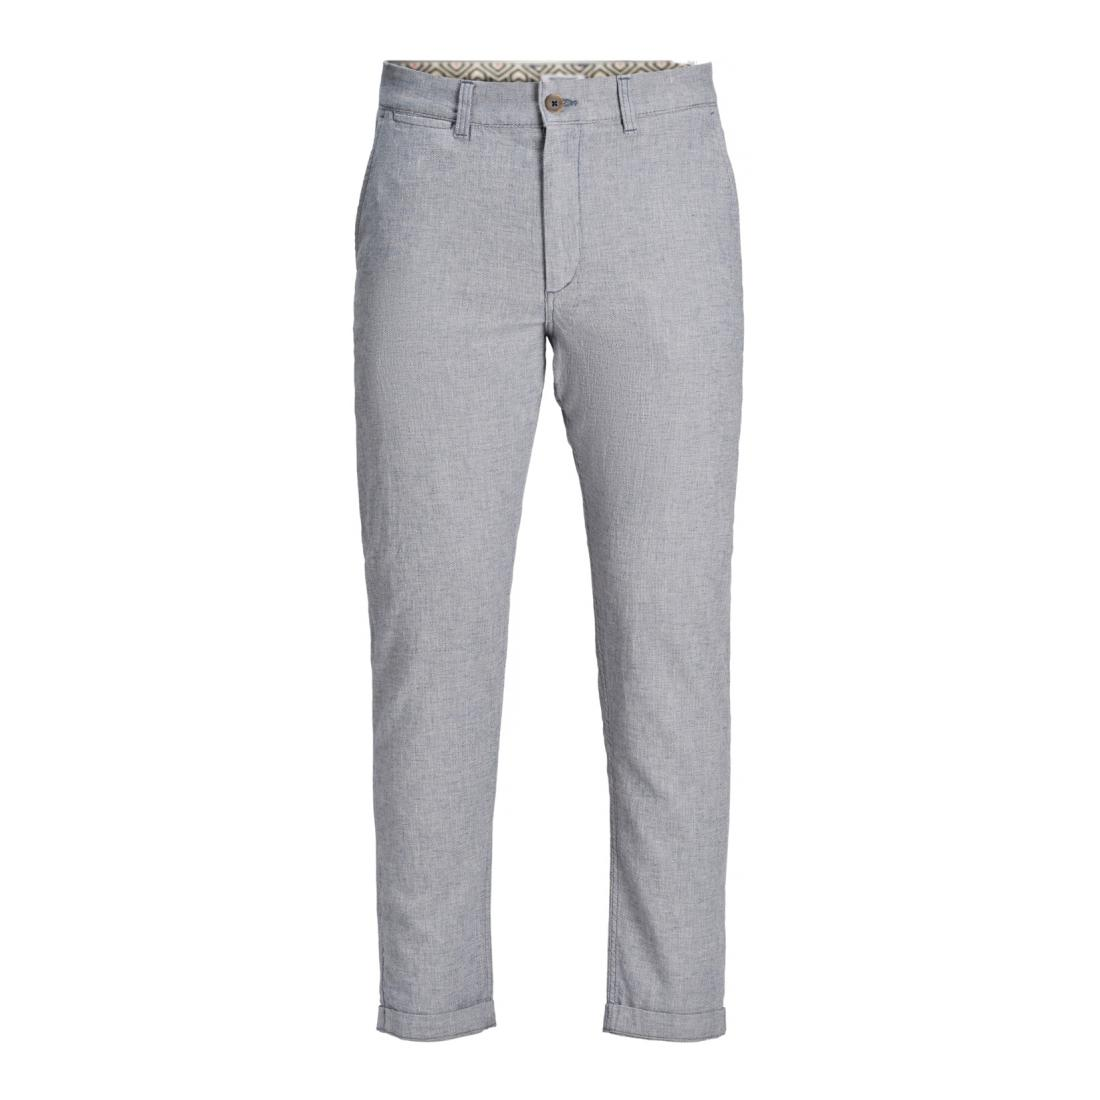 Jack & Jones Freizeithosen Herren JJIACE JJLINEN AKM LIGHT